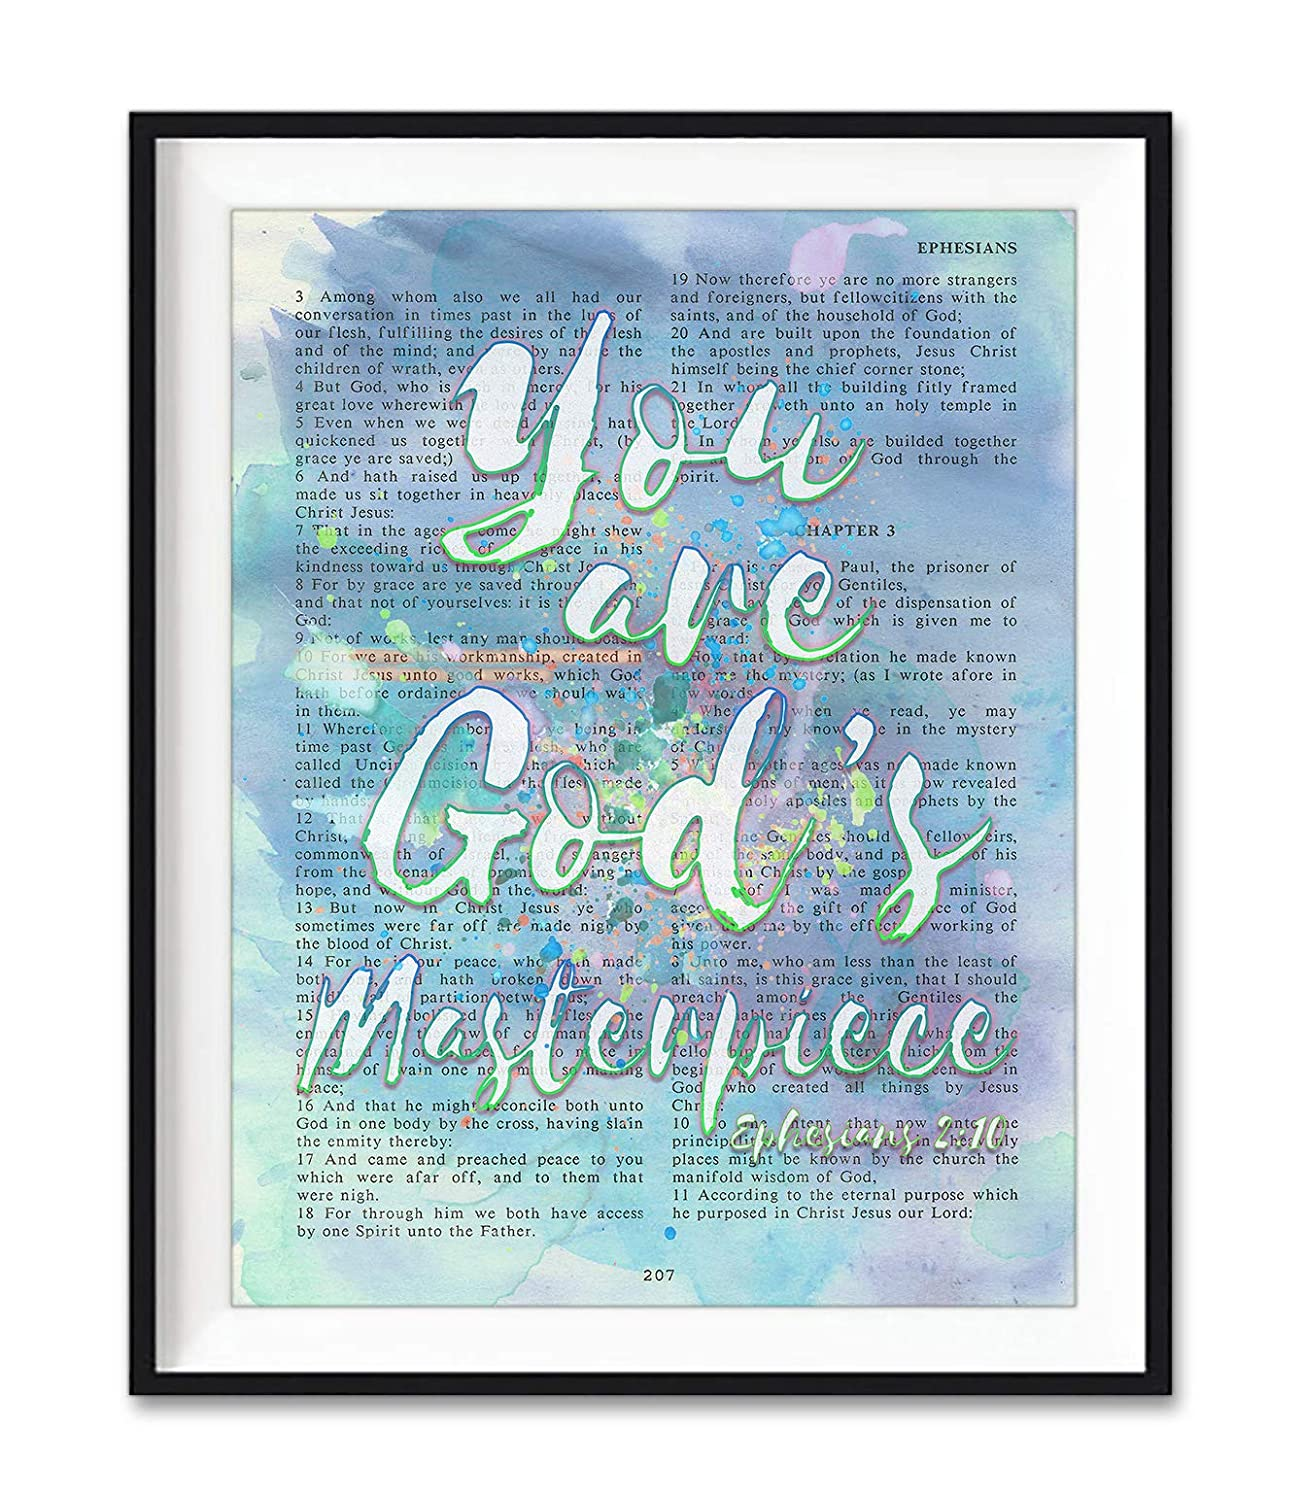 You Are God's Masterpiece, Ephesians 2:10, Vintage Bible Verse Wall Art Print, Unframed, Watercolor Christian Page Wall Art Home Decor Poster, Christmas Gift, 8x10 Inches